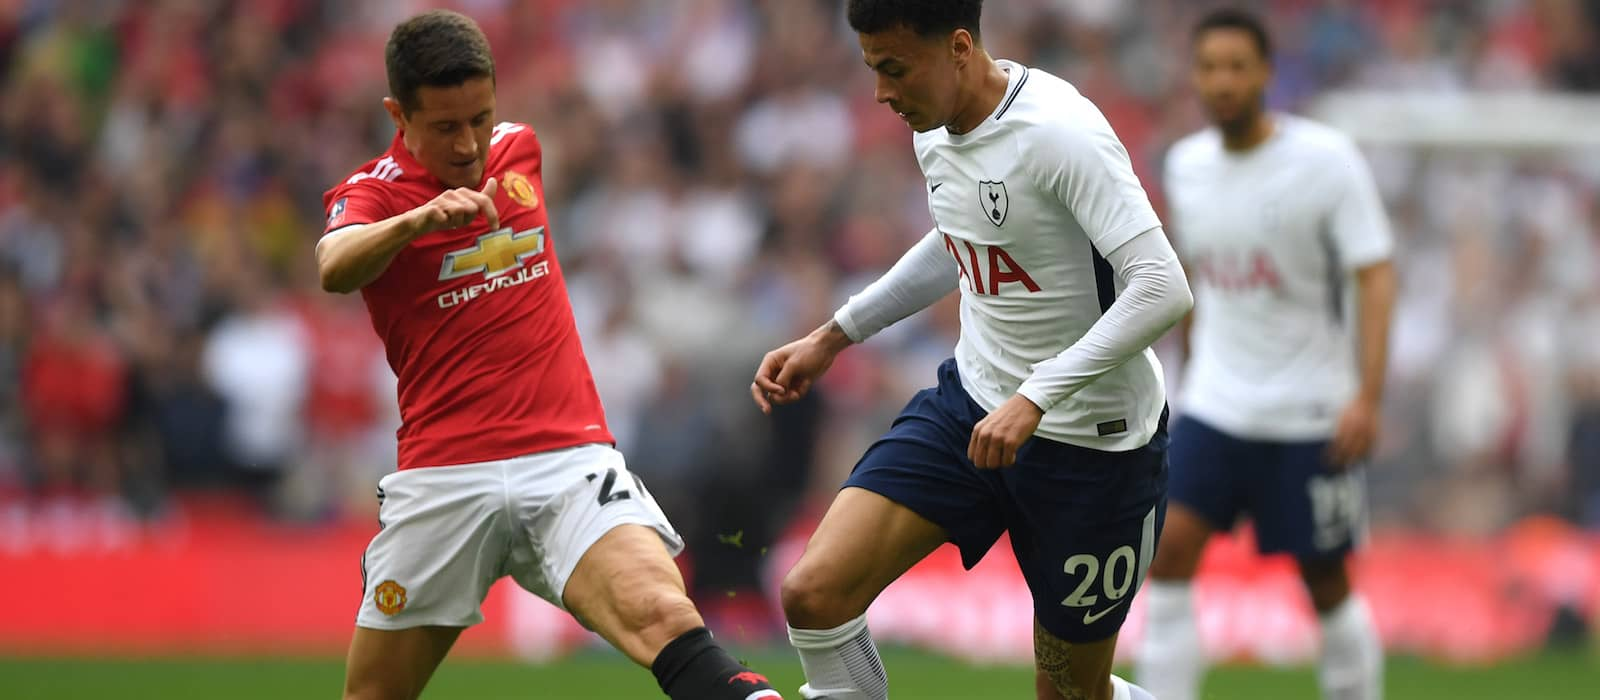 Manchester United to hand Ander Herrera a contract extension: report